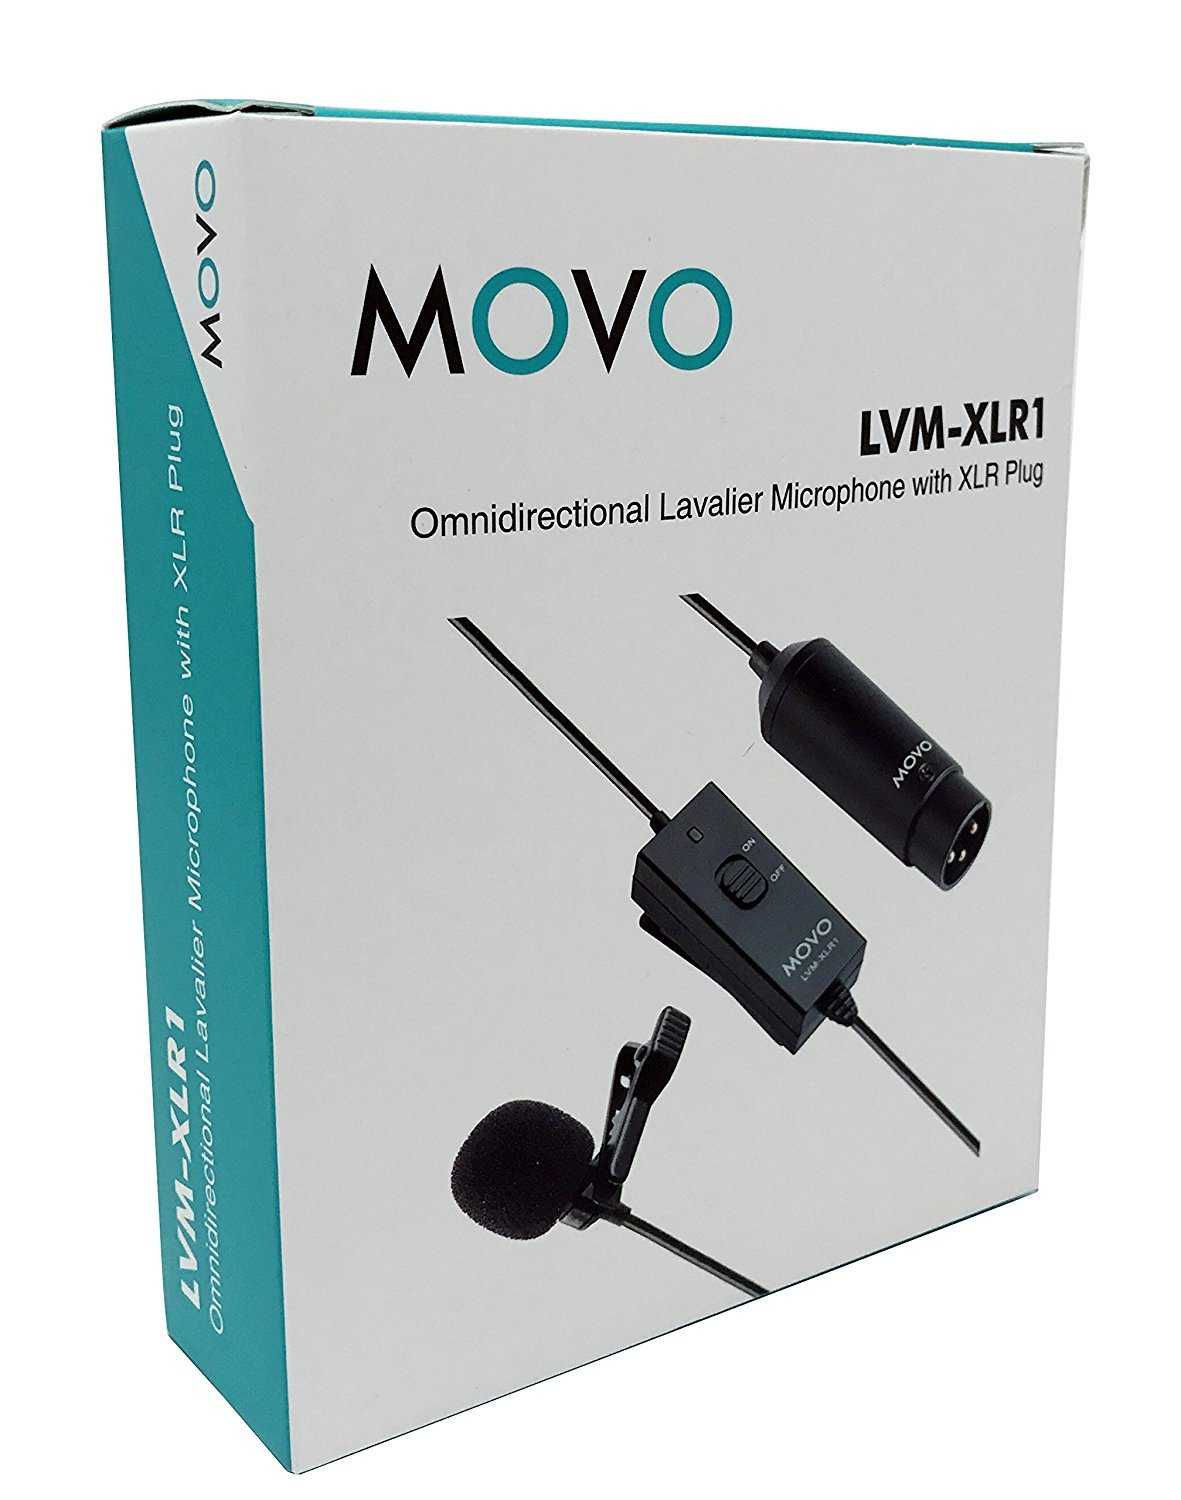 Movo Lvm Xlr1 Self Powered Xlr Omnidirectional Lavalier Electret Microphone To Wiring Together With Sc4060 Dpa Microphones For Mixers Recorders Camcorders More Musical Instruments